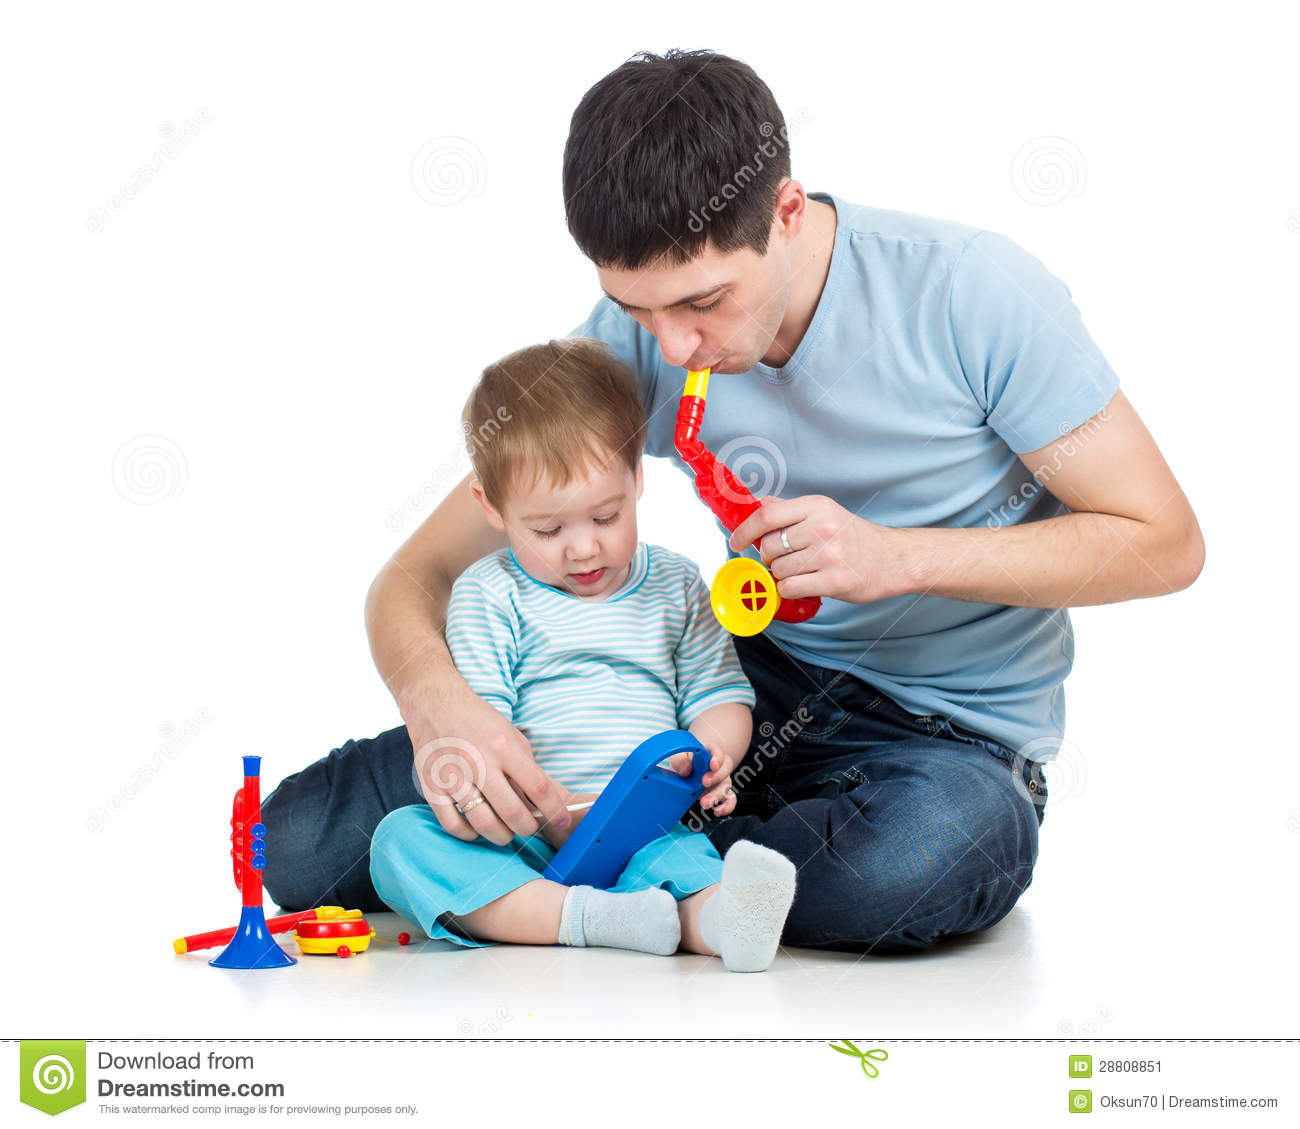 Boy Toys For Dads : Father and baby boy having fun with musical toys stock